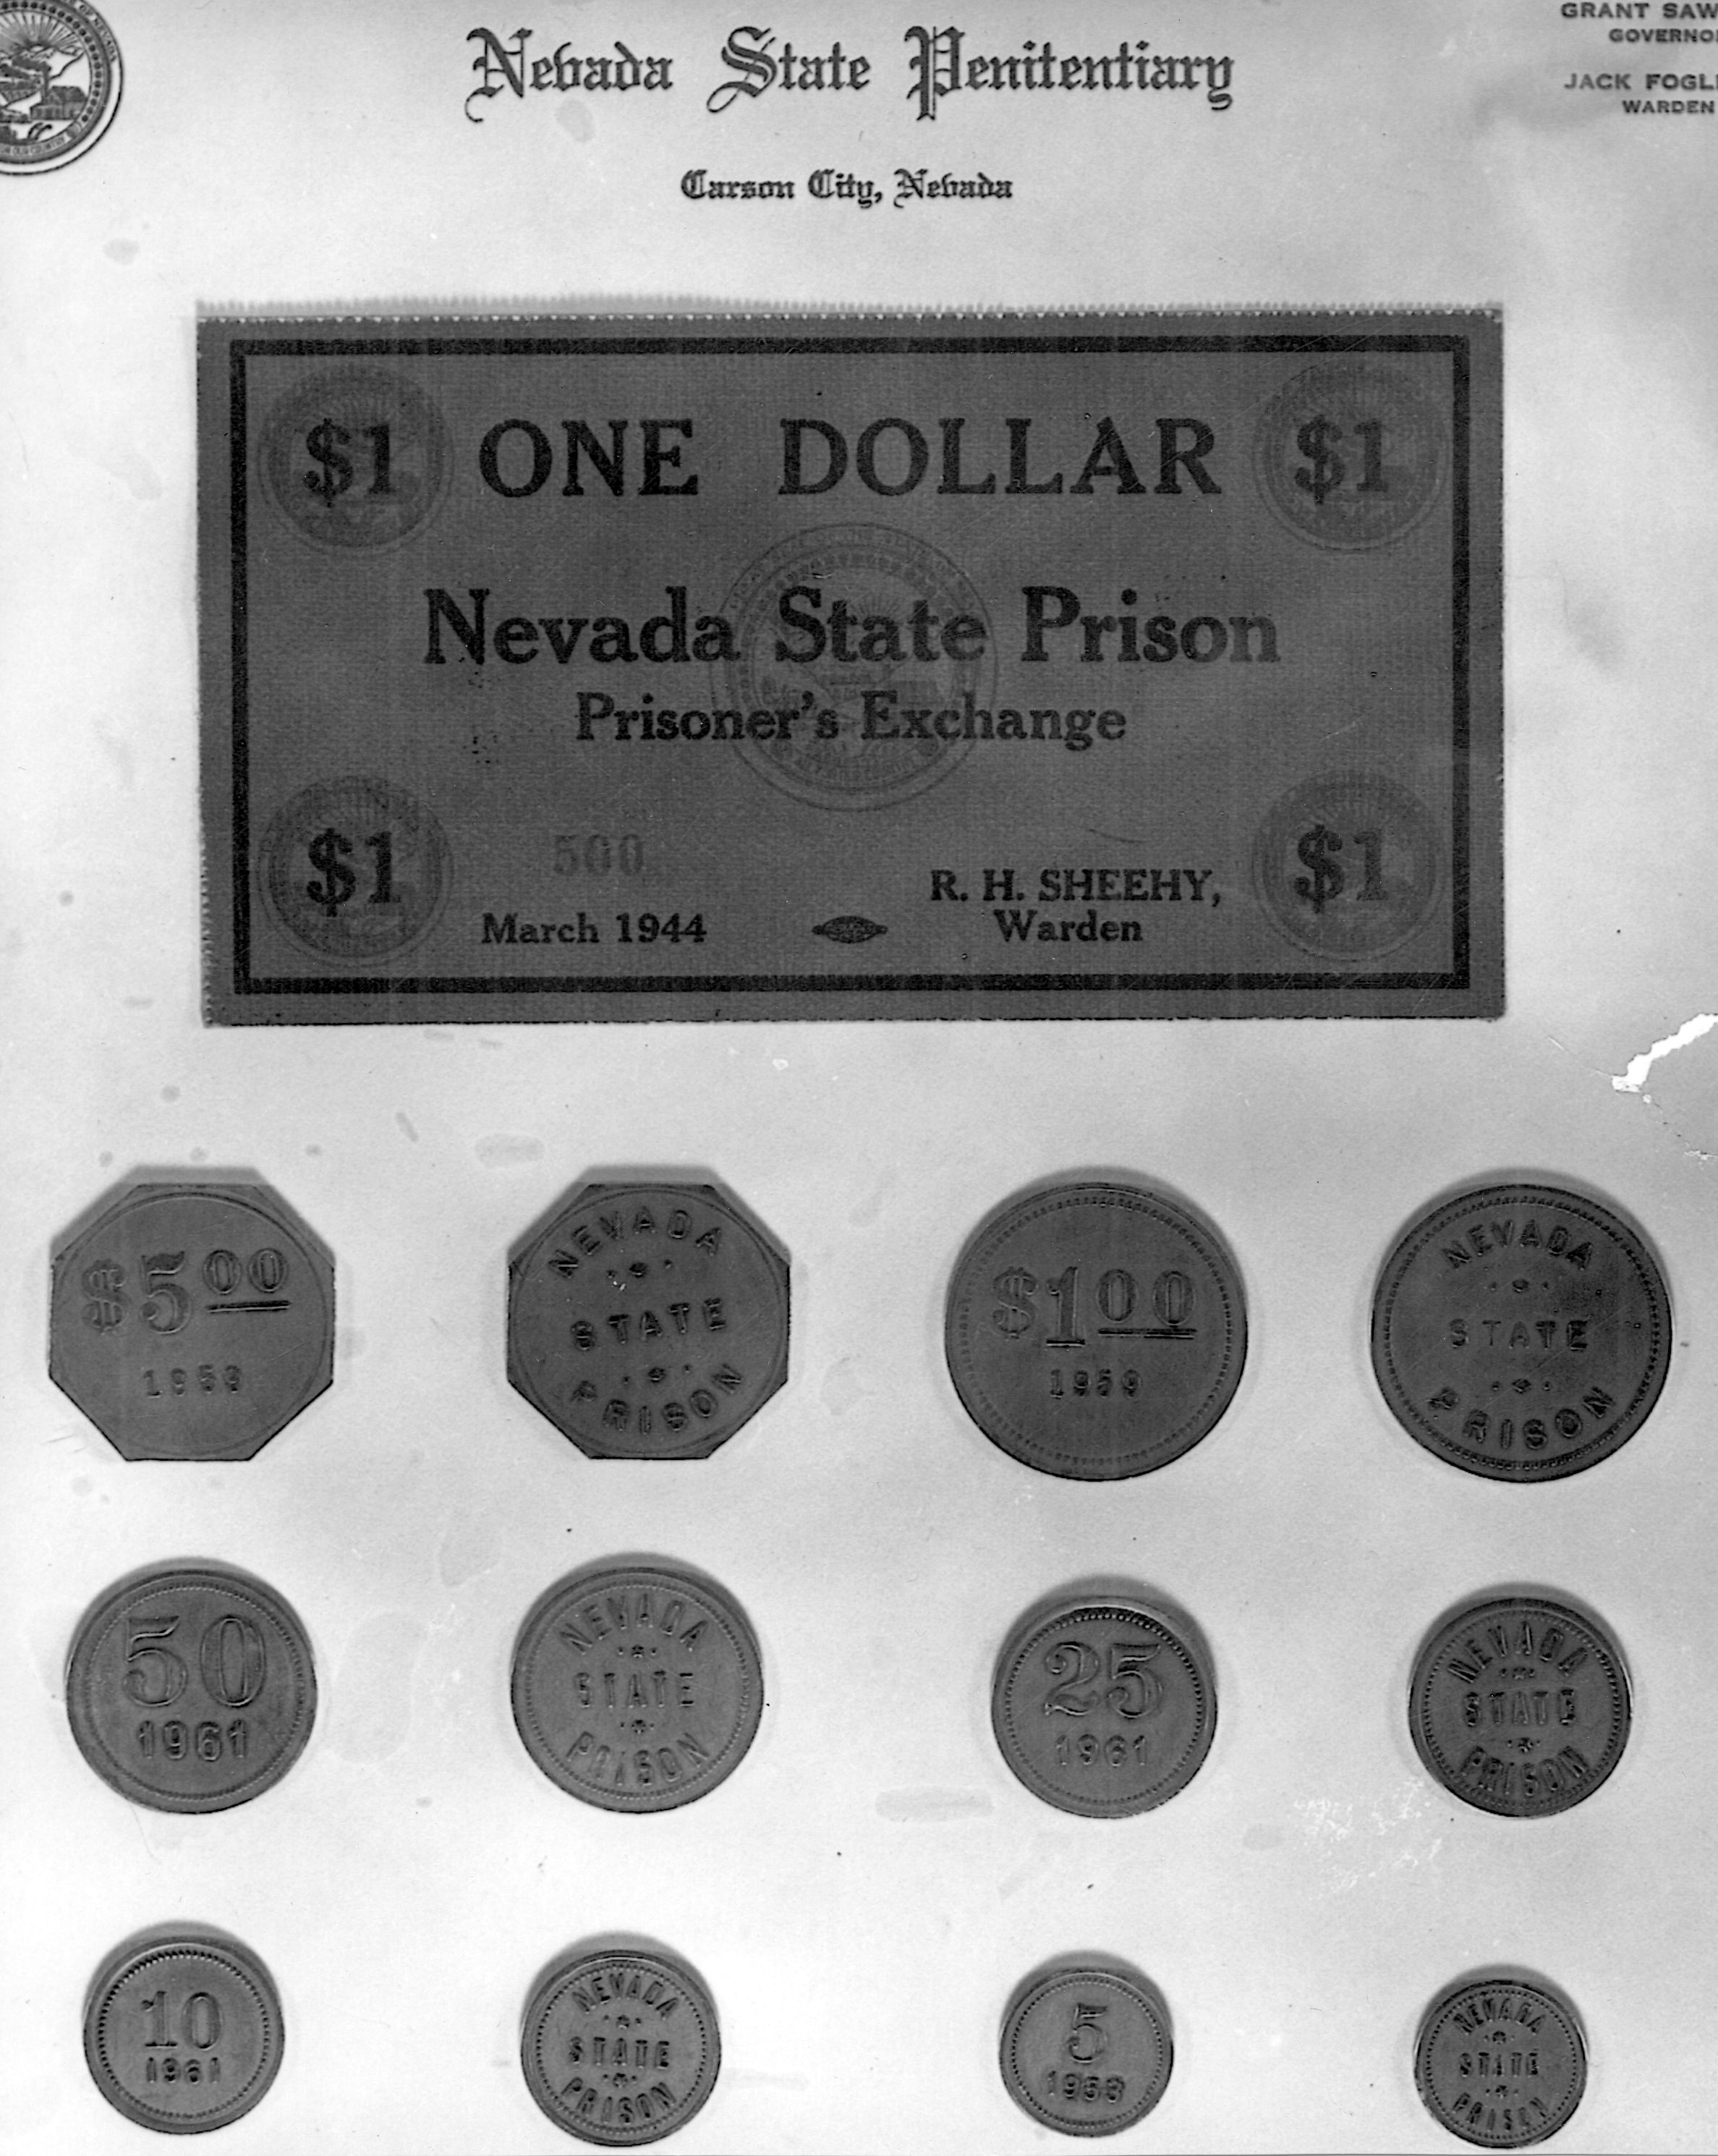 The currency that prisoners used